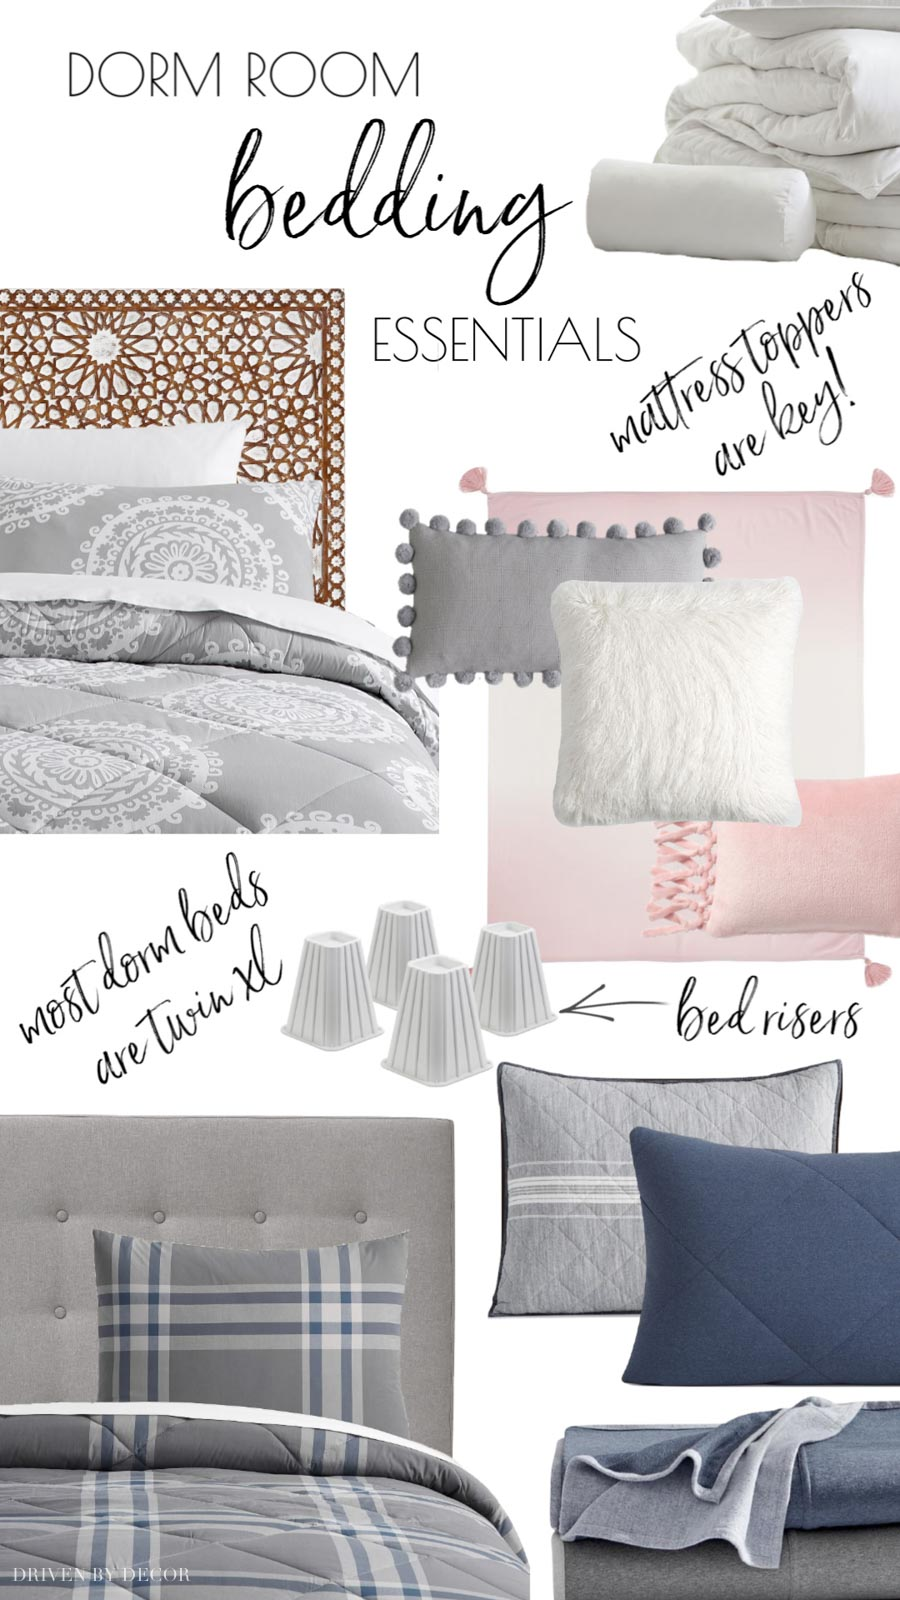 Great college dorm room checklist with all of the bedding items you'll need!